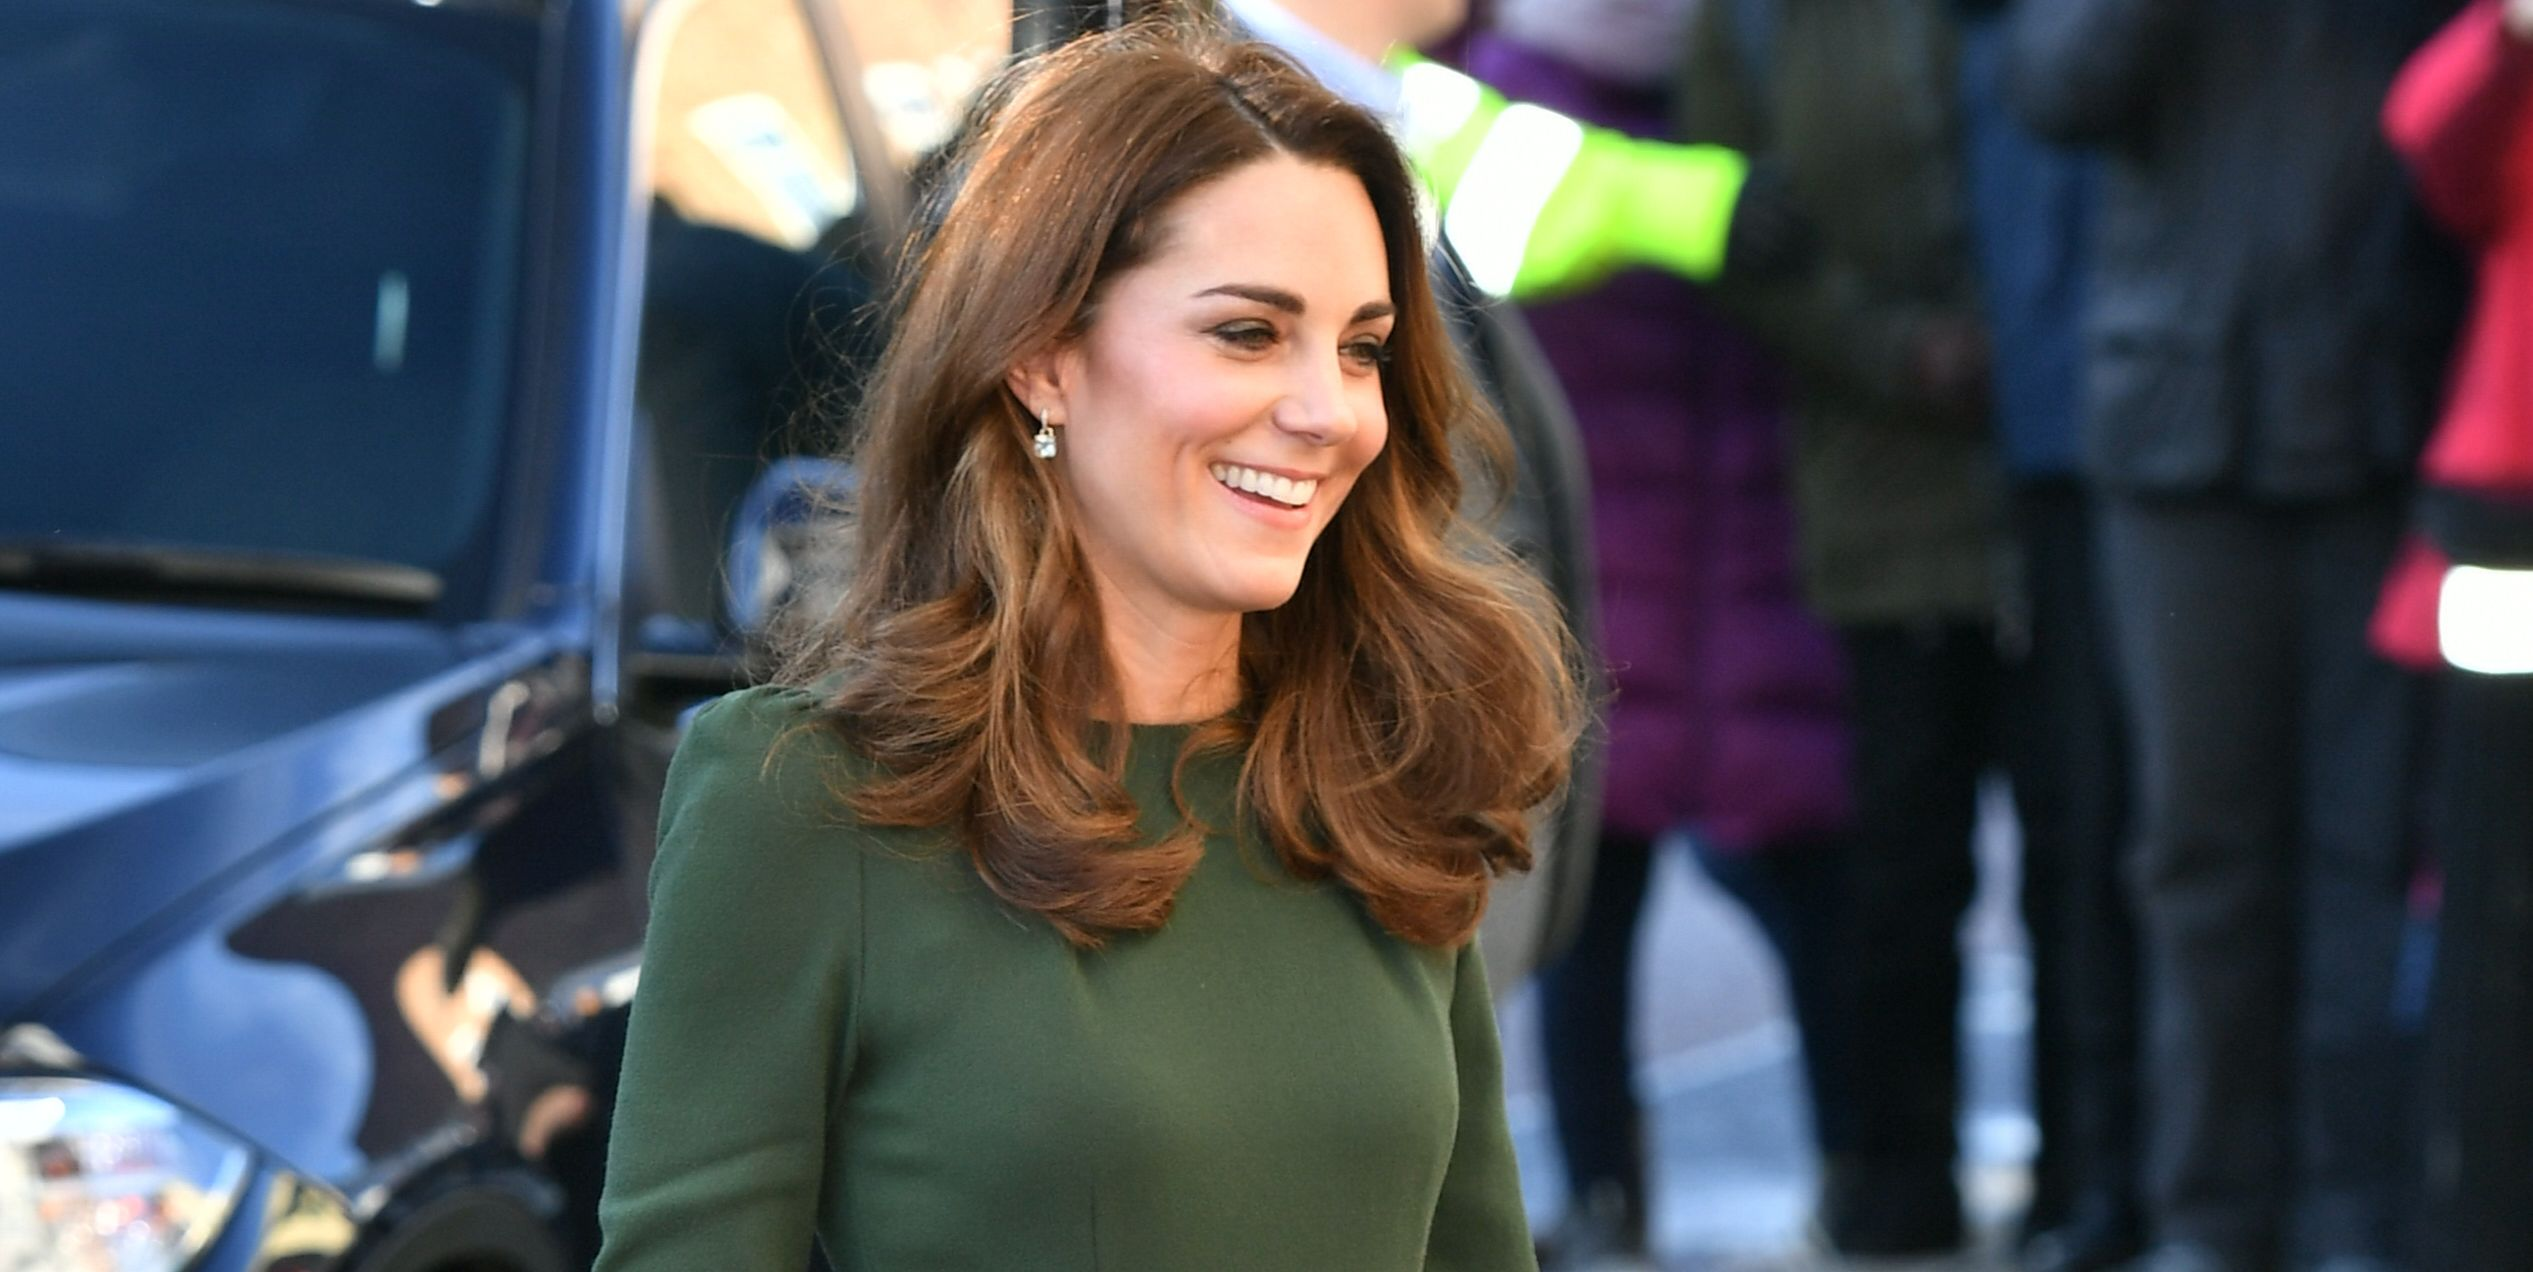 Kate Middleton Wears a Green Belted Midi Dress to Visit Family Action Charity